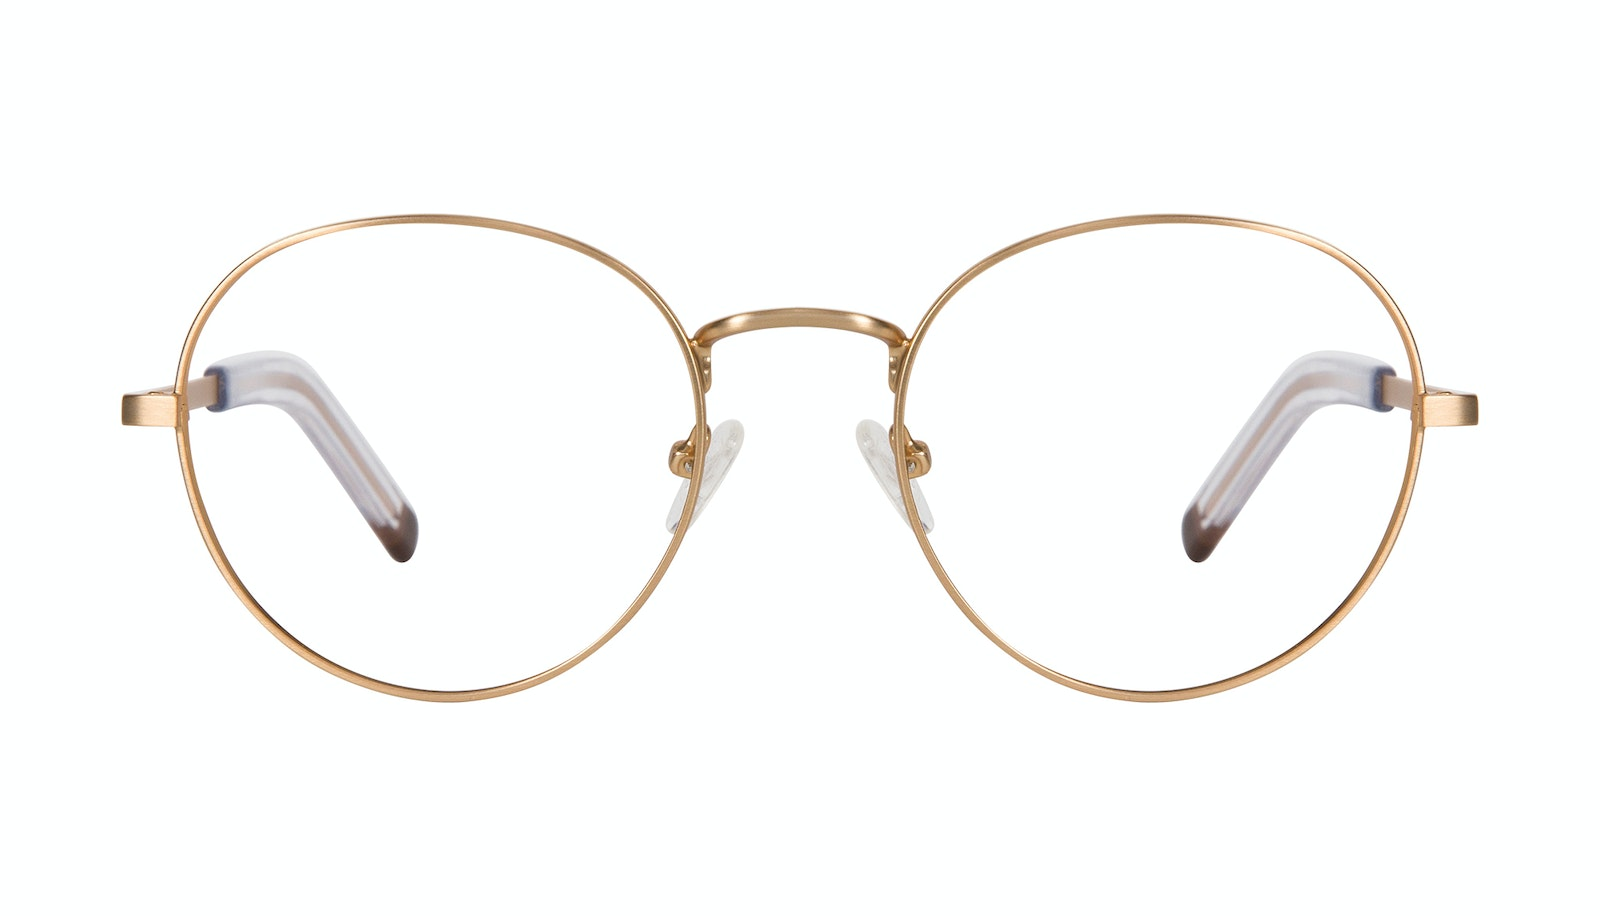 Affordable Fashion Glasses Round Eyeglasses Men Lean XL Gold Matte